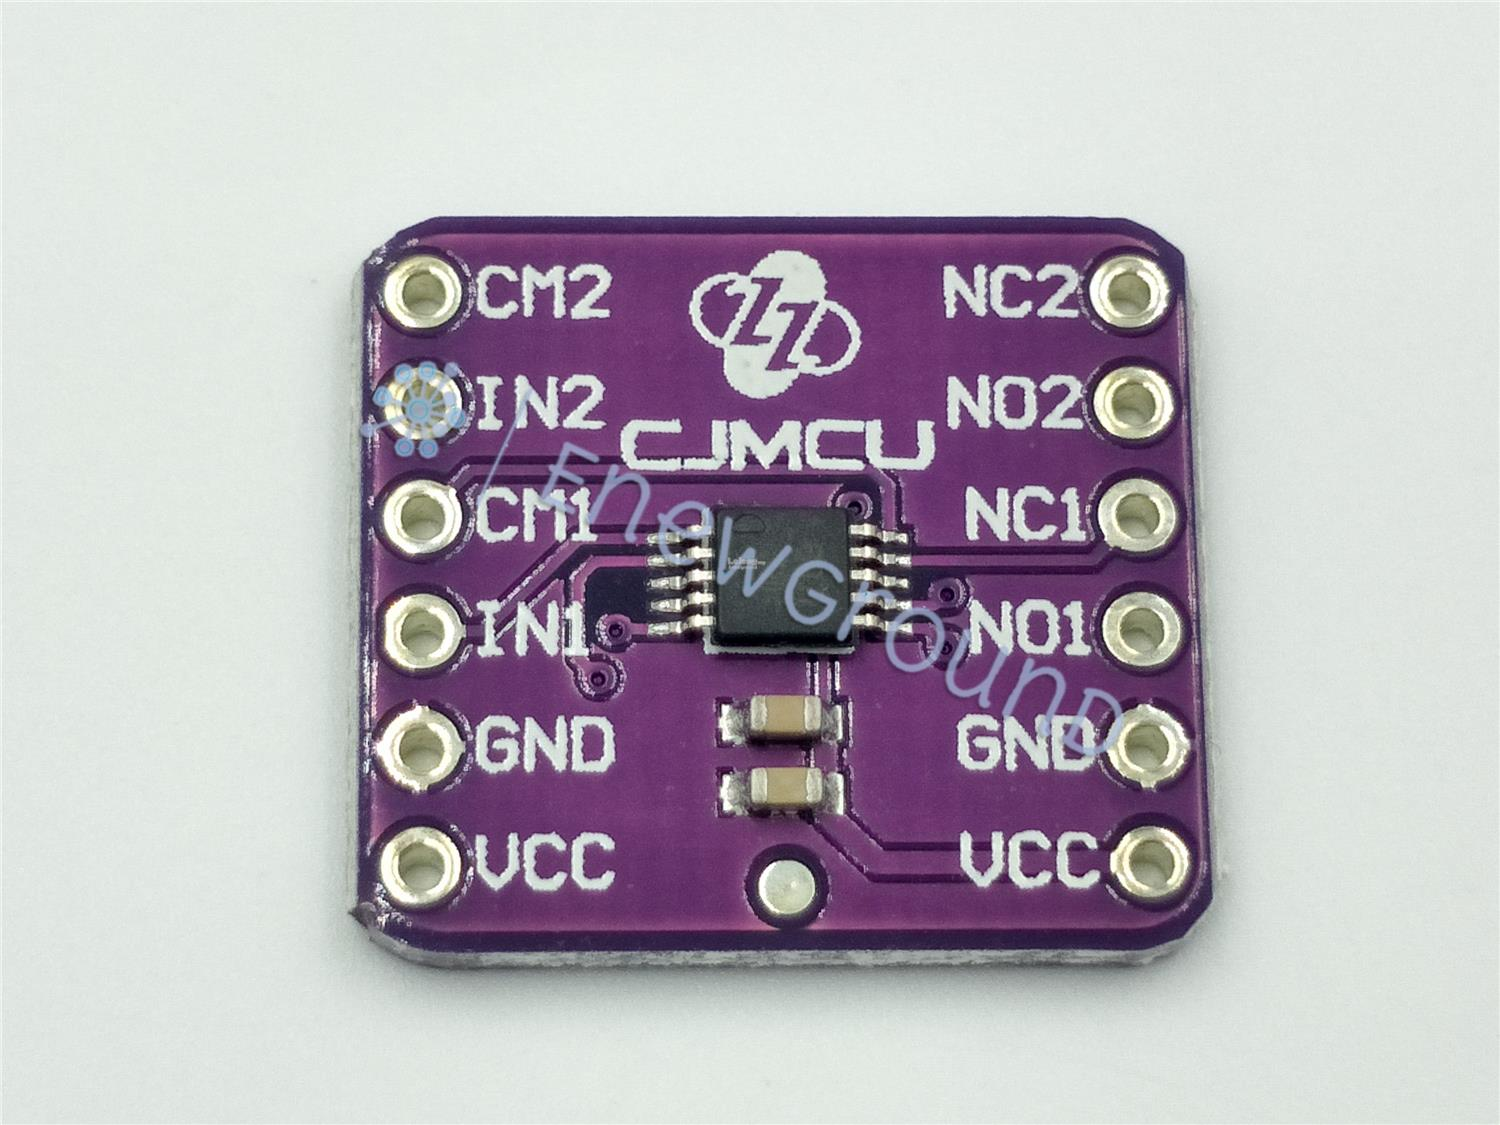 SPDT analog logic switch (CJMCU-23157, TS5A23157 10 ohm)